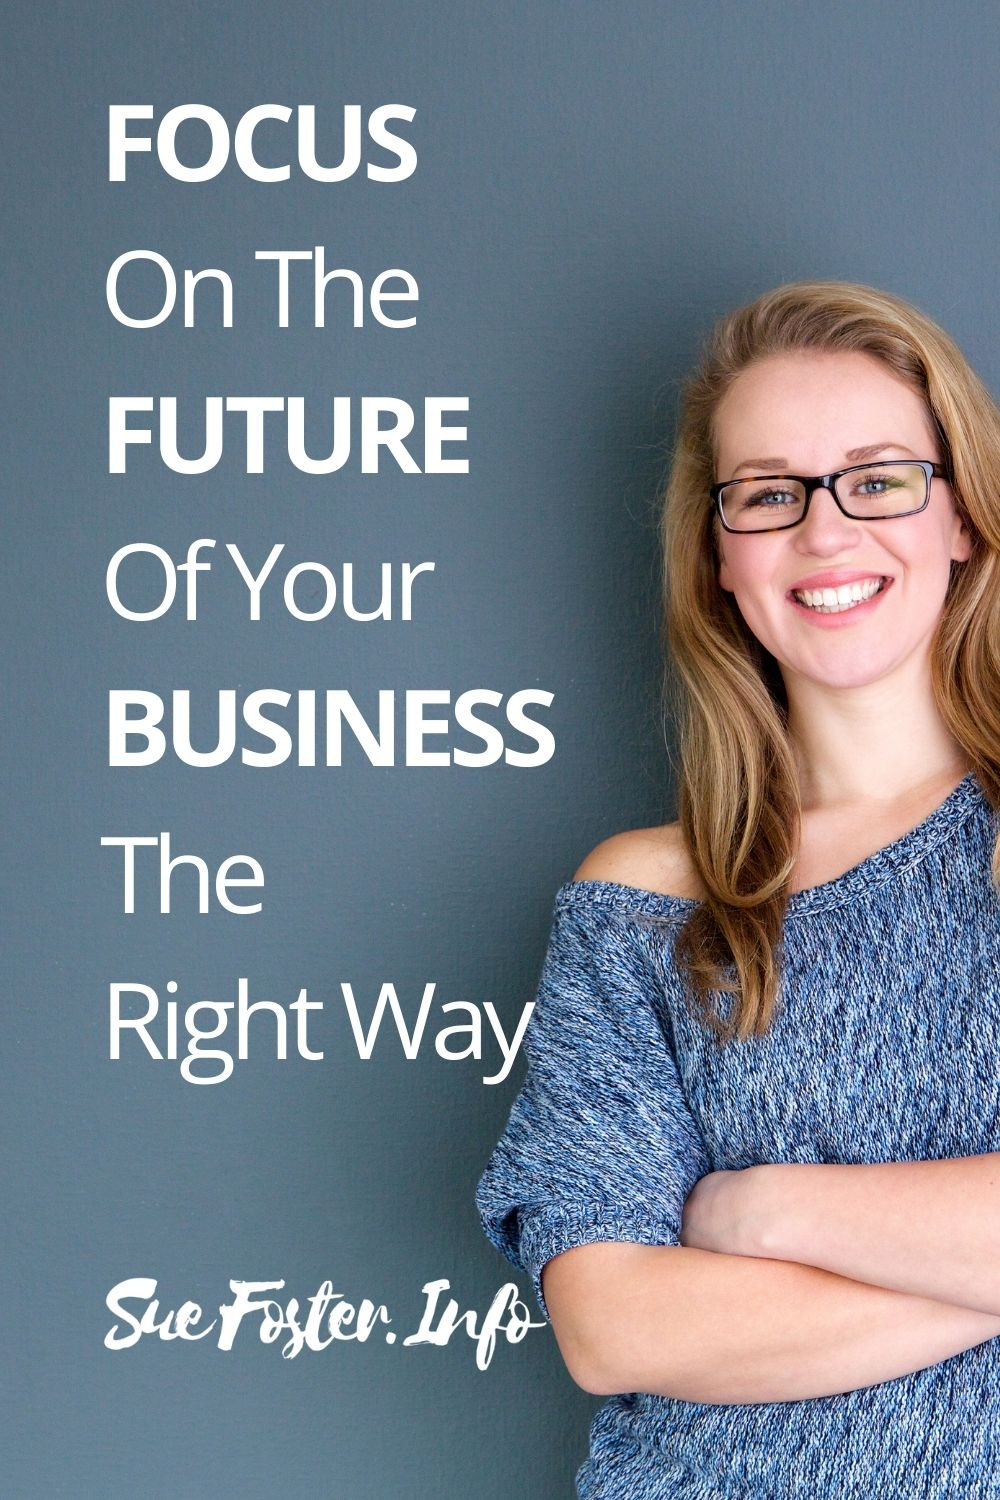 Focus on The Future of Your Business The Right Way